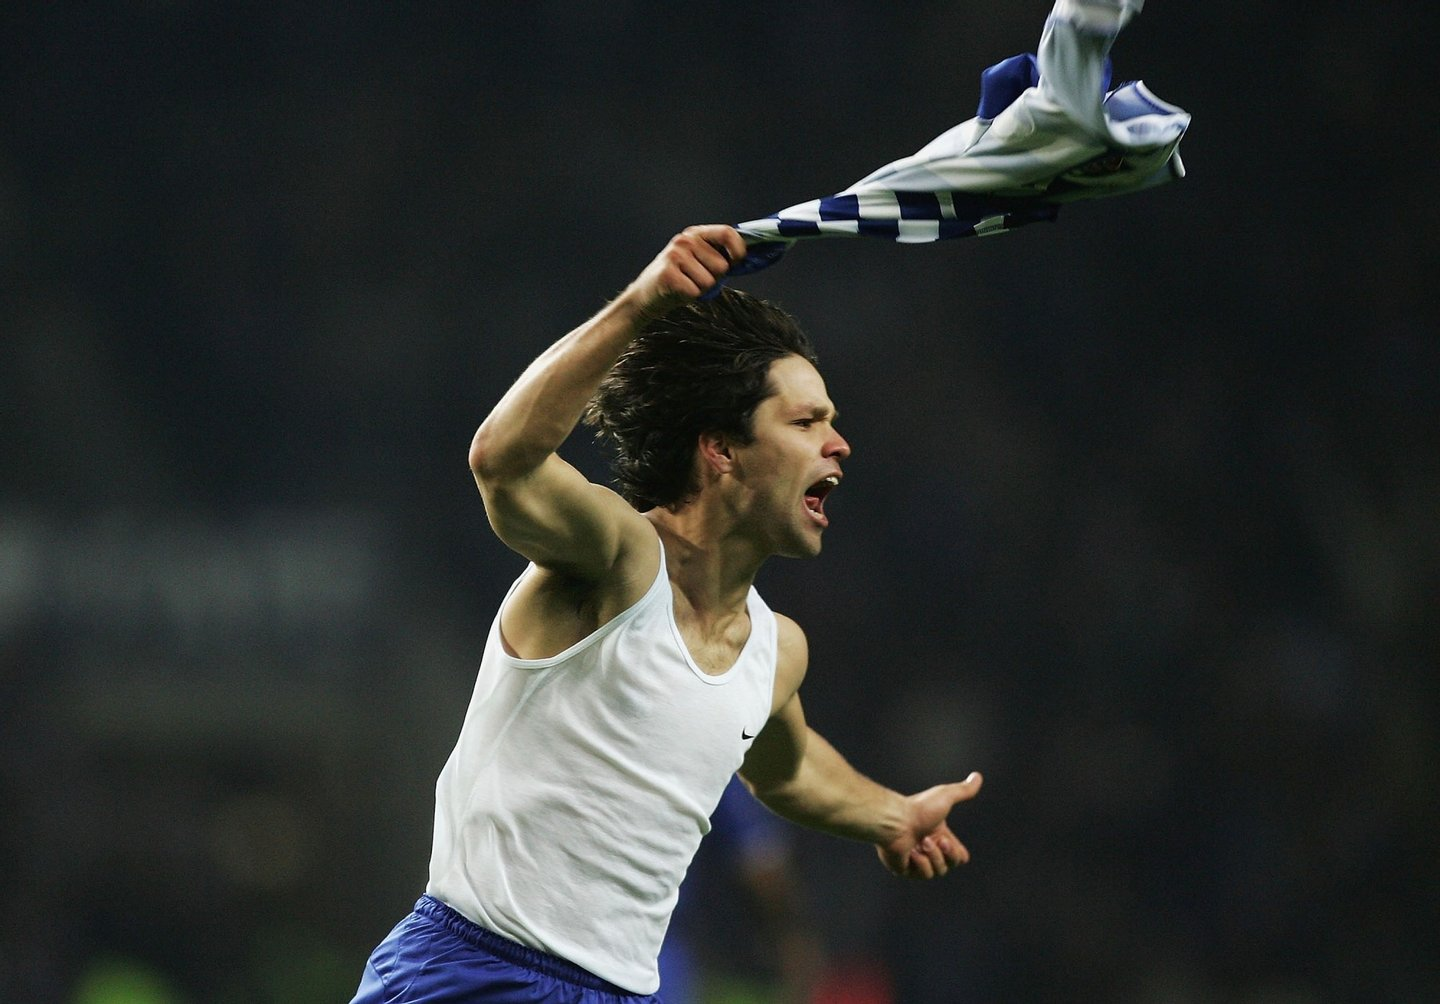 PORTO, PORTUGAL - DECEMBER 7: Diego of FC Porto celebrates scoring their first goal during the Champions League Group H match against FC Porto and Chelsea at the Estadio Do Dragao on December 7, 2004 in Porto, Portugal. (Photo by Christopher Lee/Getty Images)